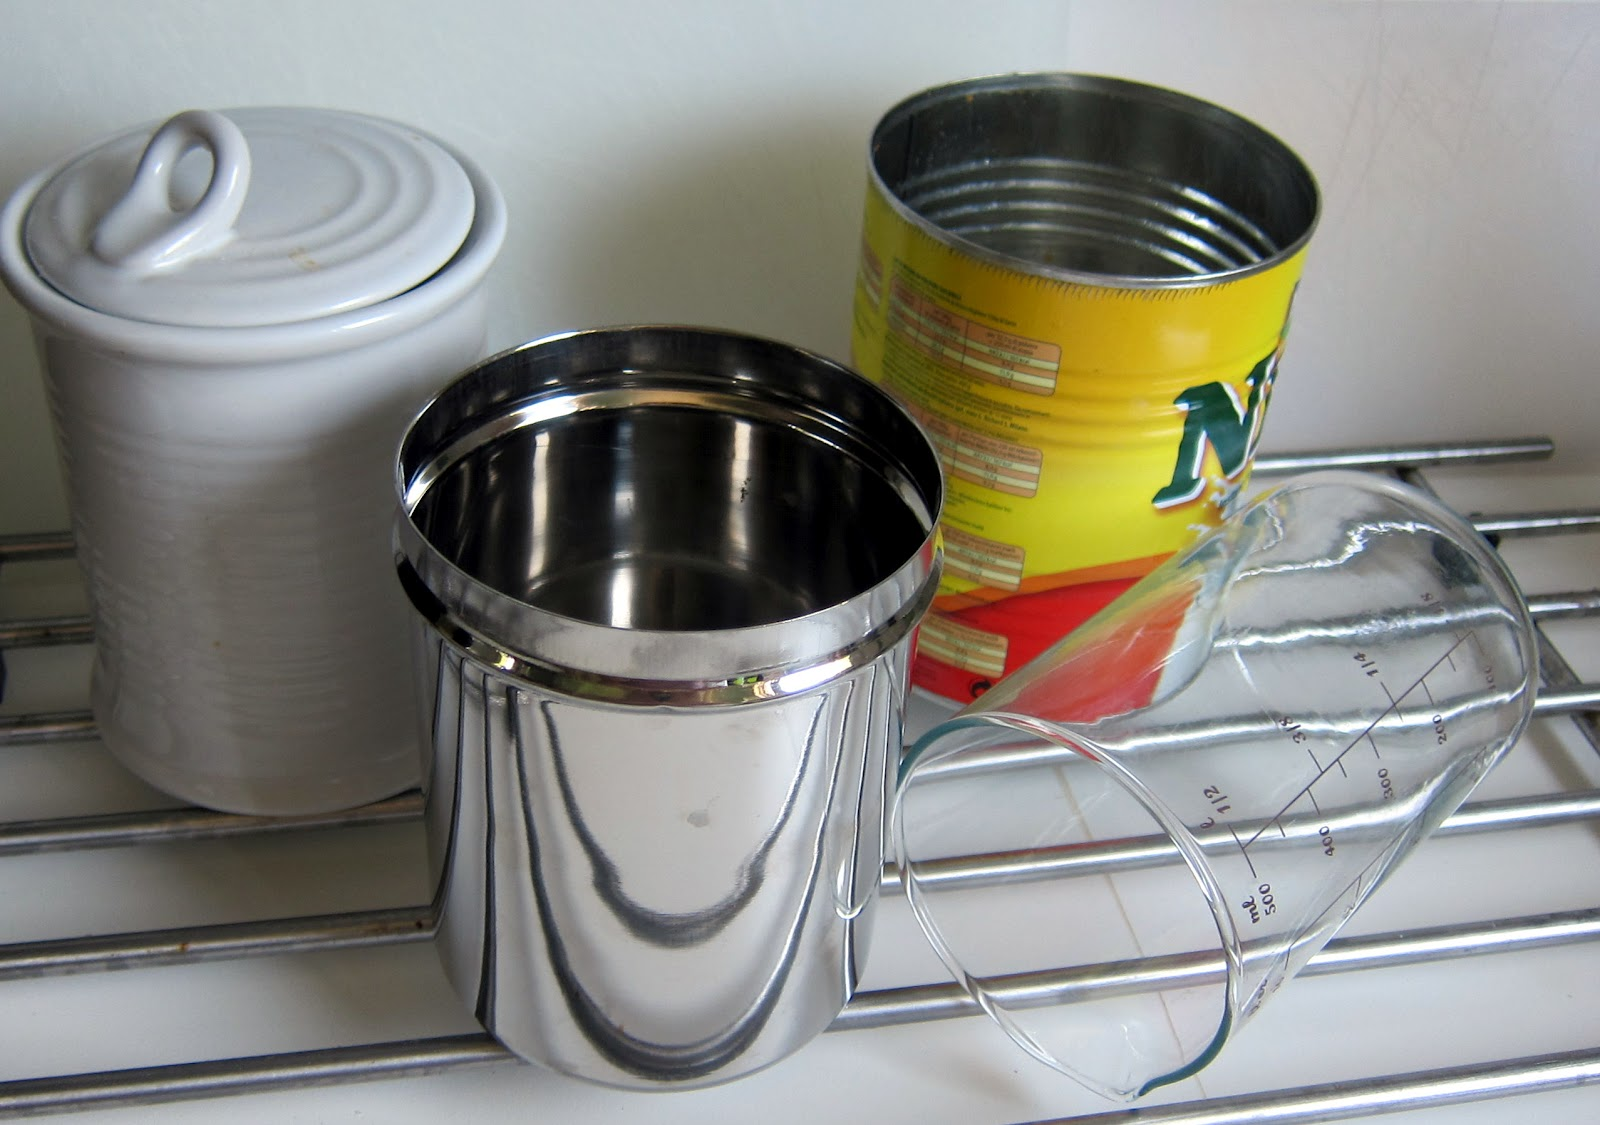 PRESSURE COOKER CONTAINERS